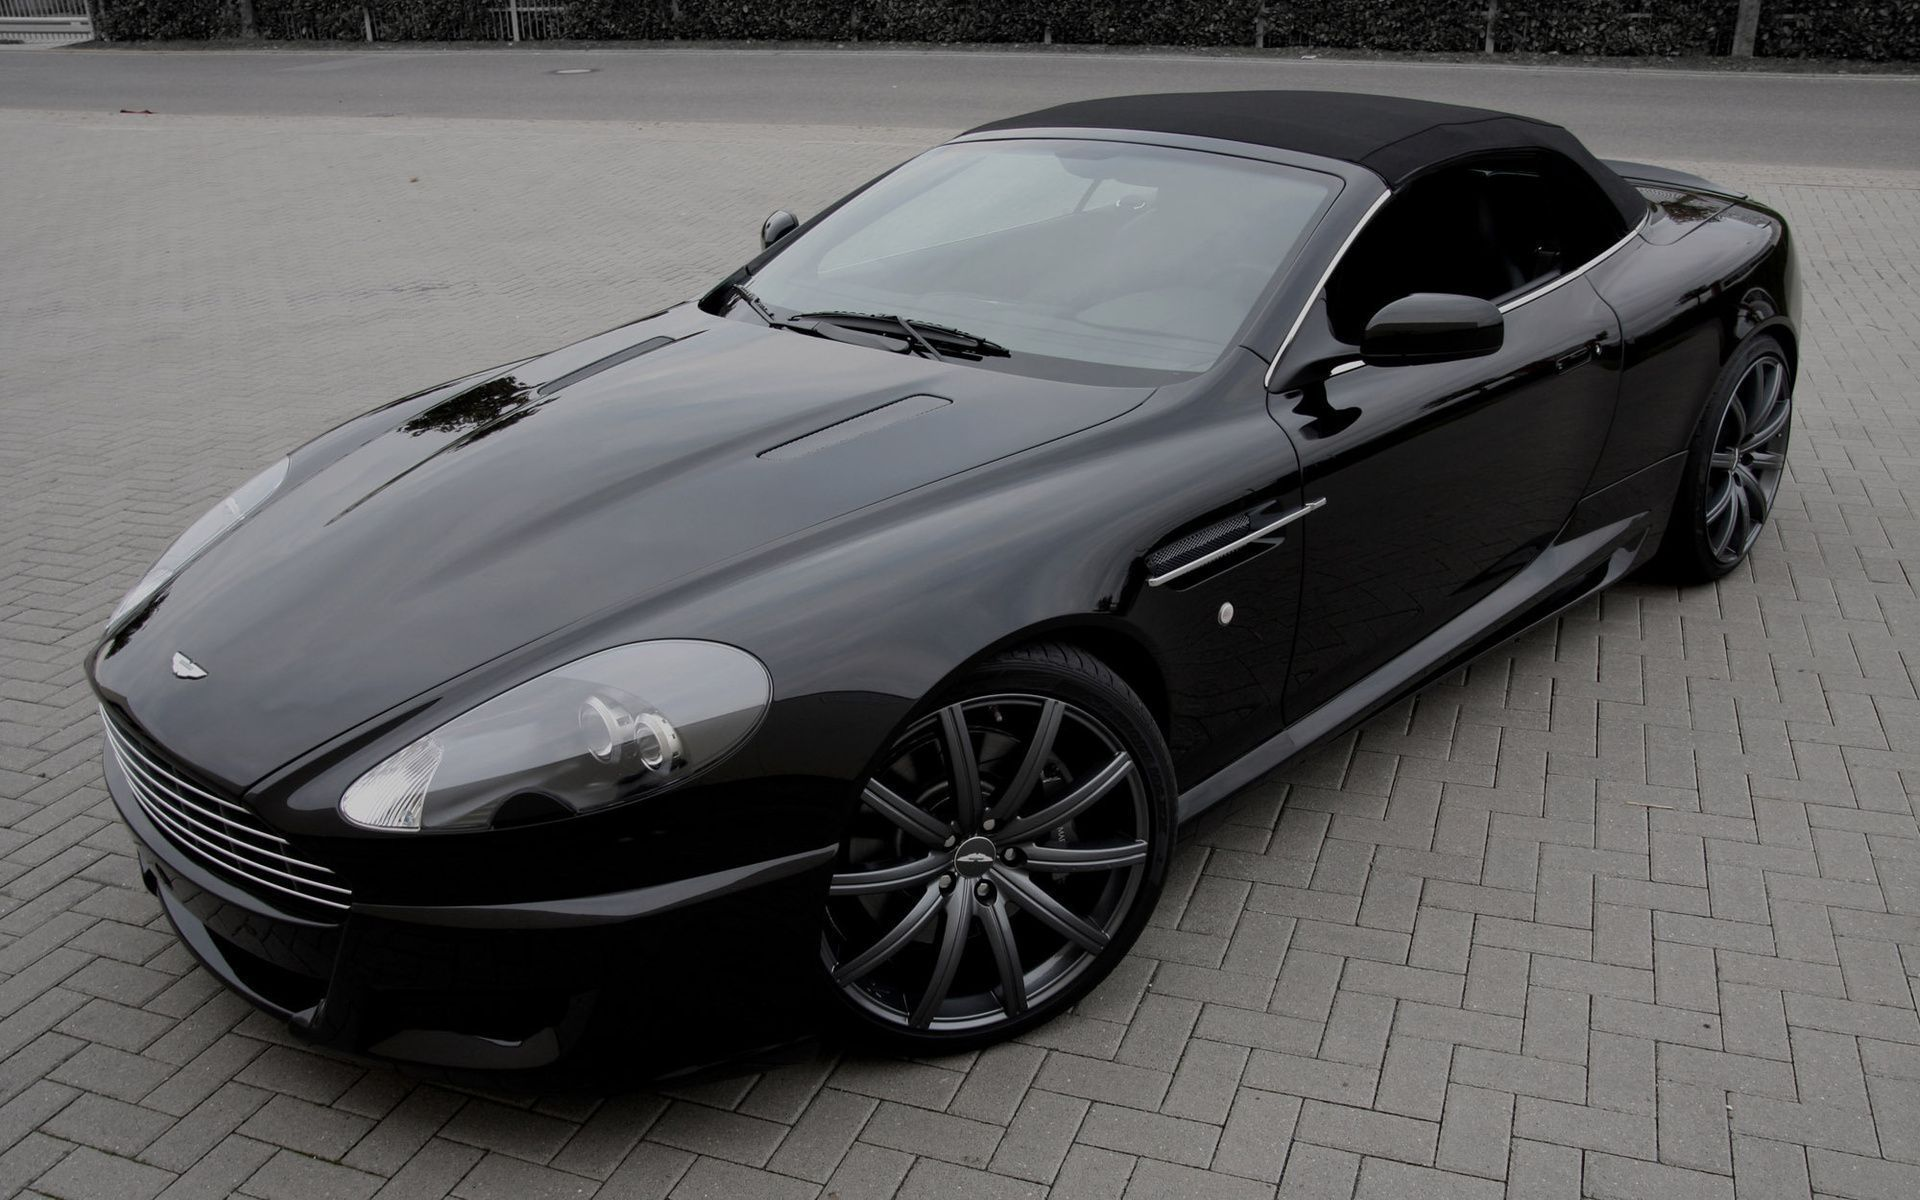 Aston Martin Db9 In High Resolution